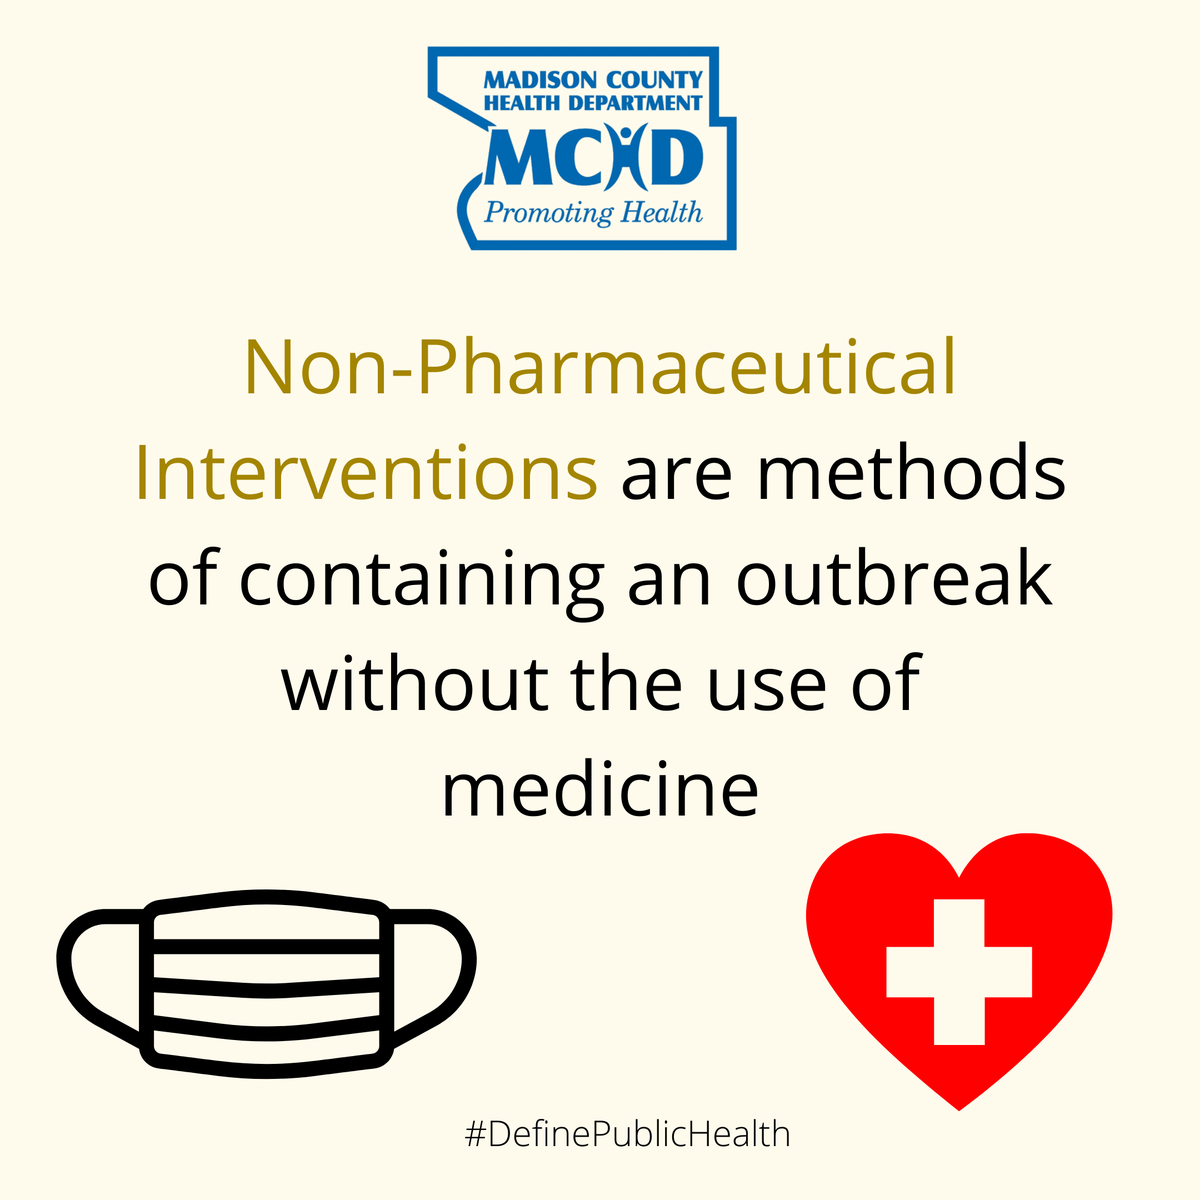 We hear a lot about non-pharmaceutical interventions, but what does that mean? Non-pharmaceutical interventions are methods of containing an outbreak without the use of medicine.  #DefinePublicHealth #TheMoreYouKnow #ThisIsPublicHealth #COVID19